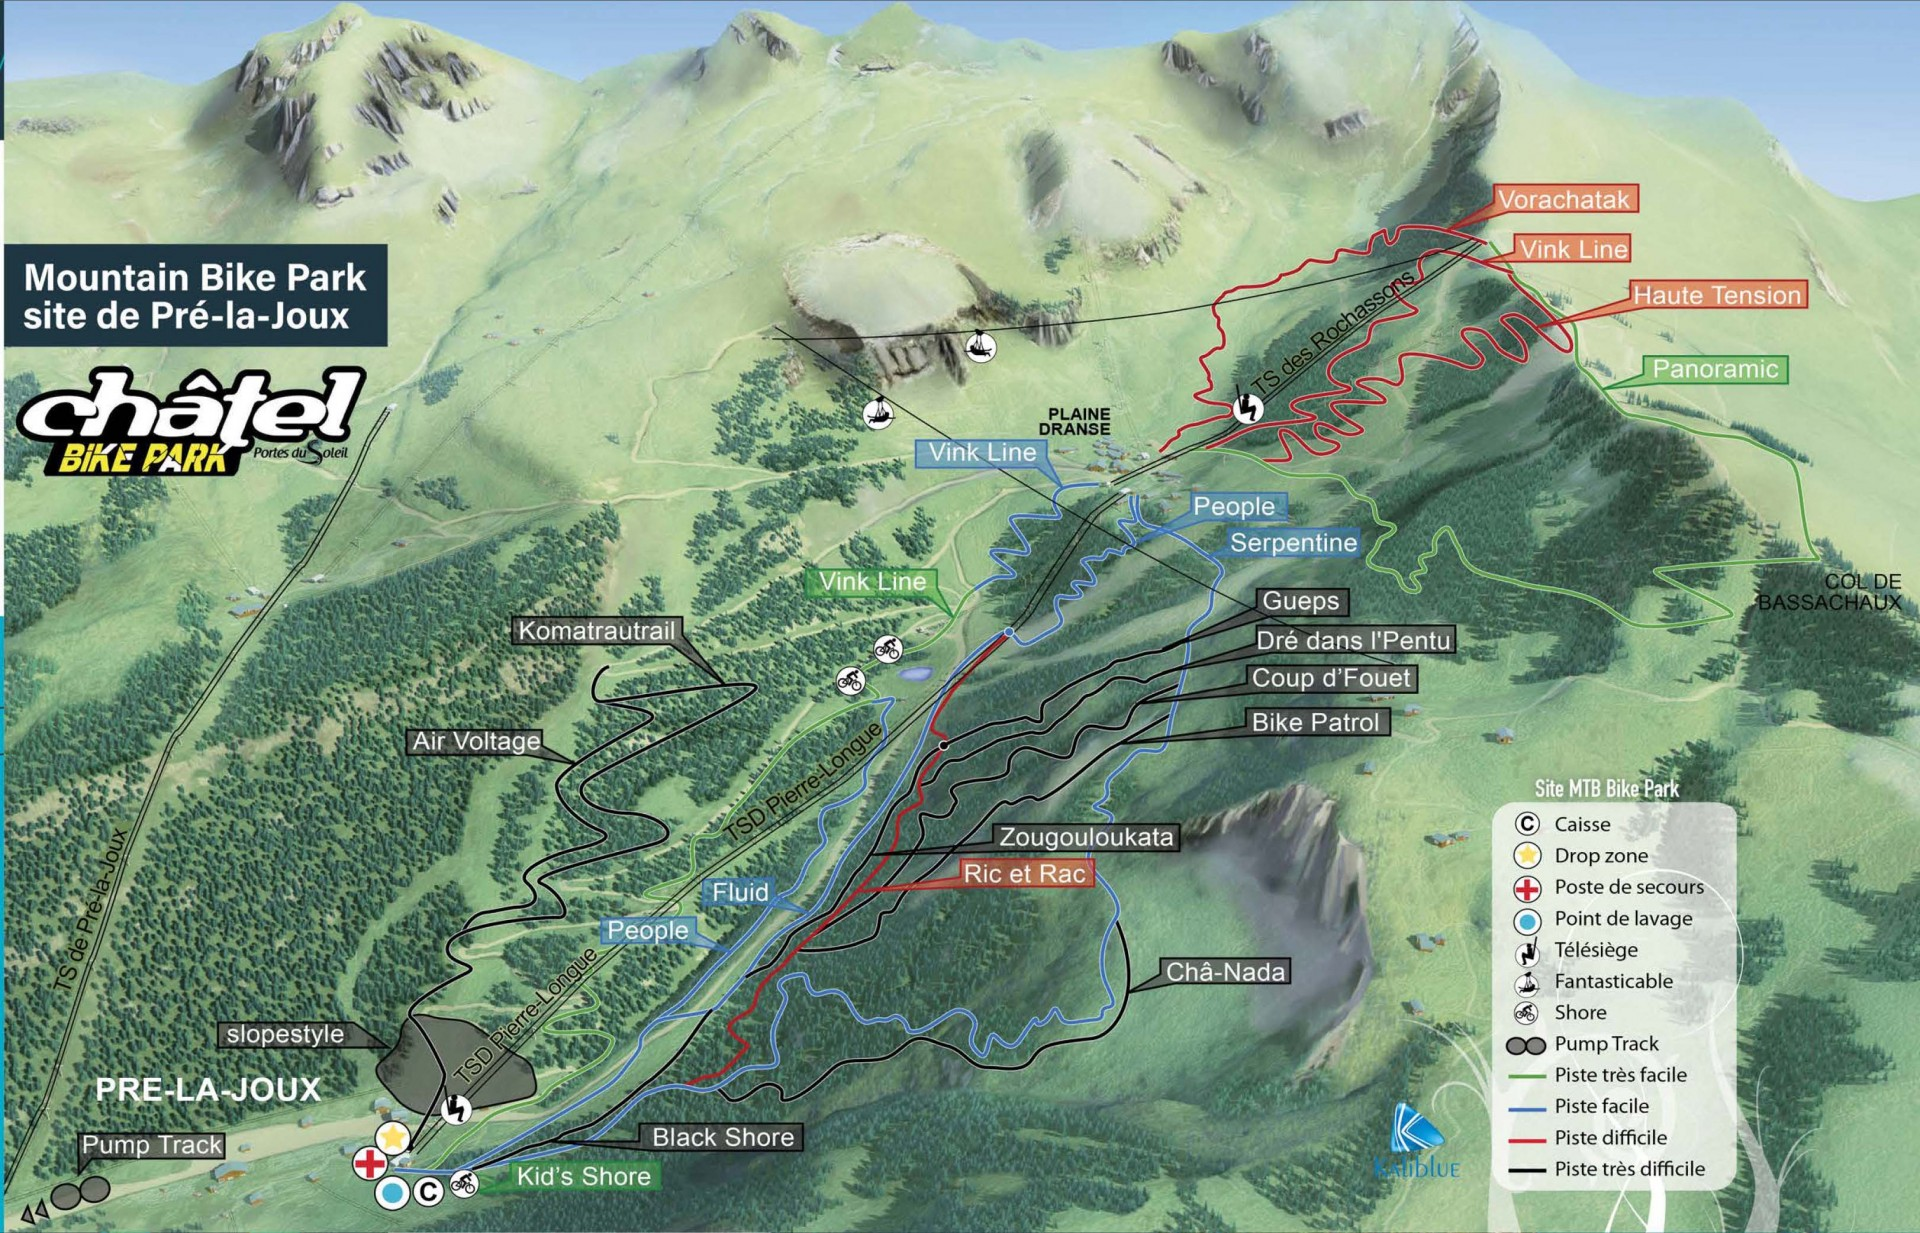 Map of the Châtel Bike Park